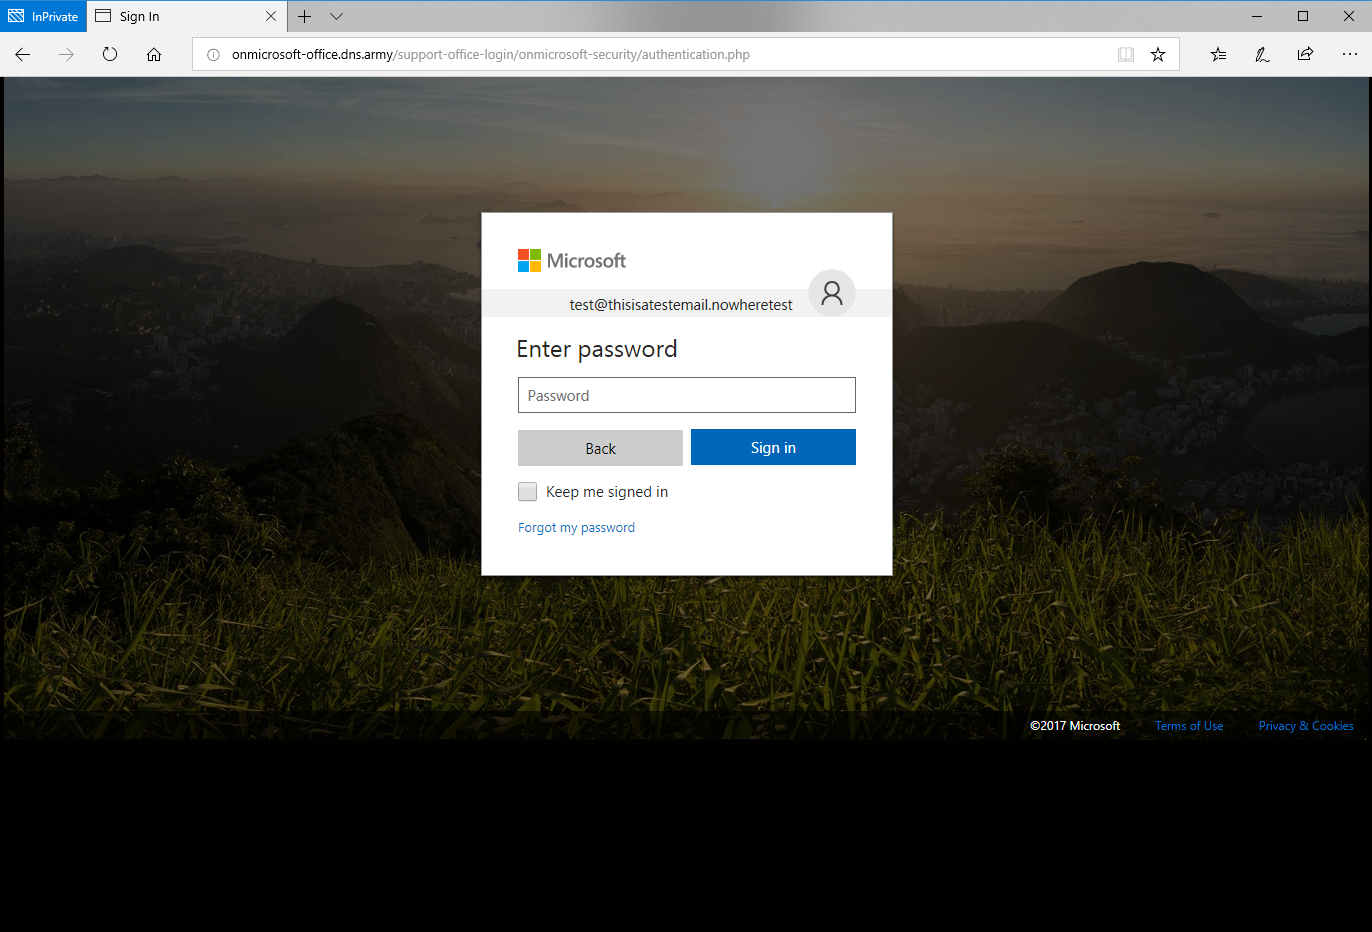 Phishing website for Office 365 password page